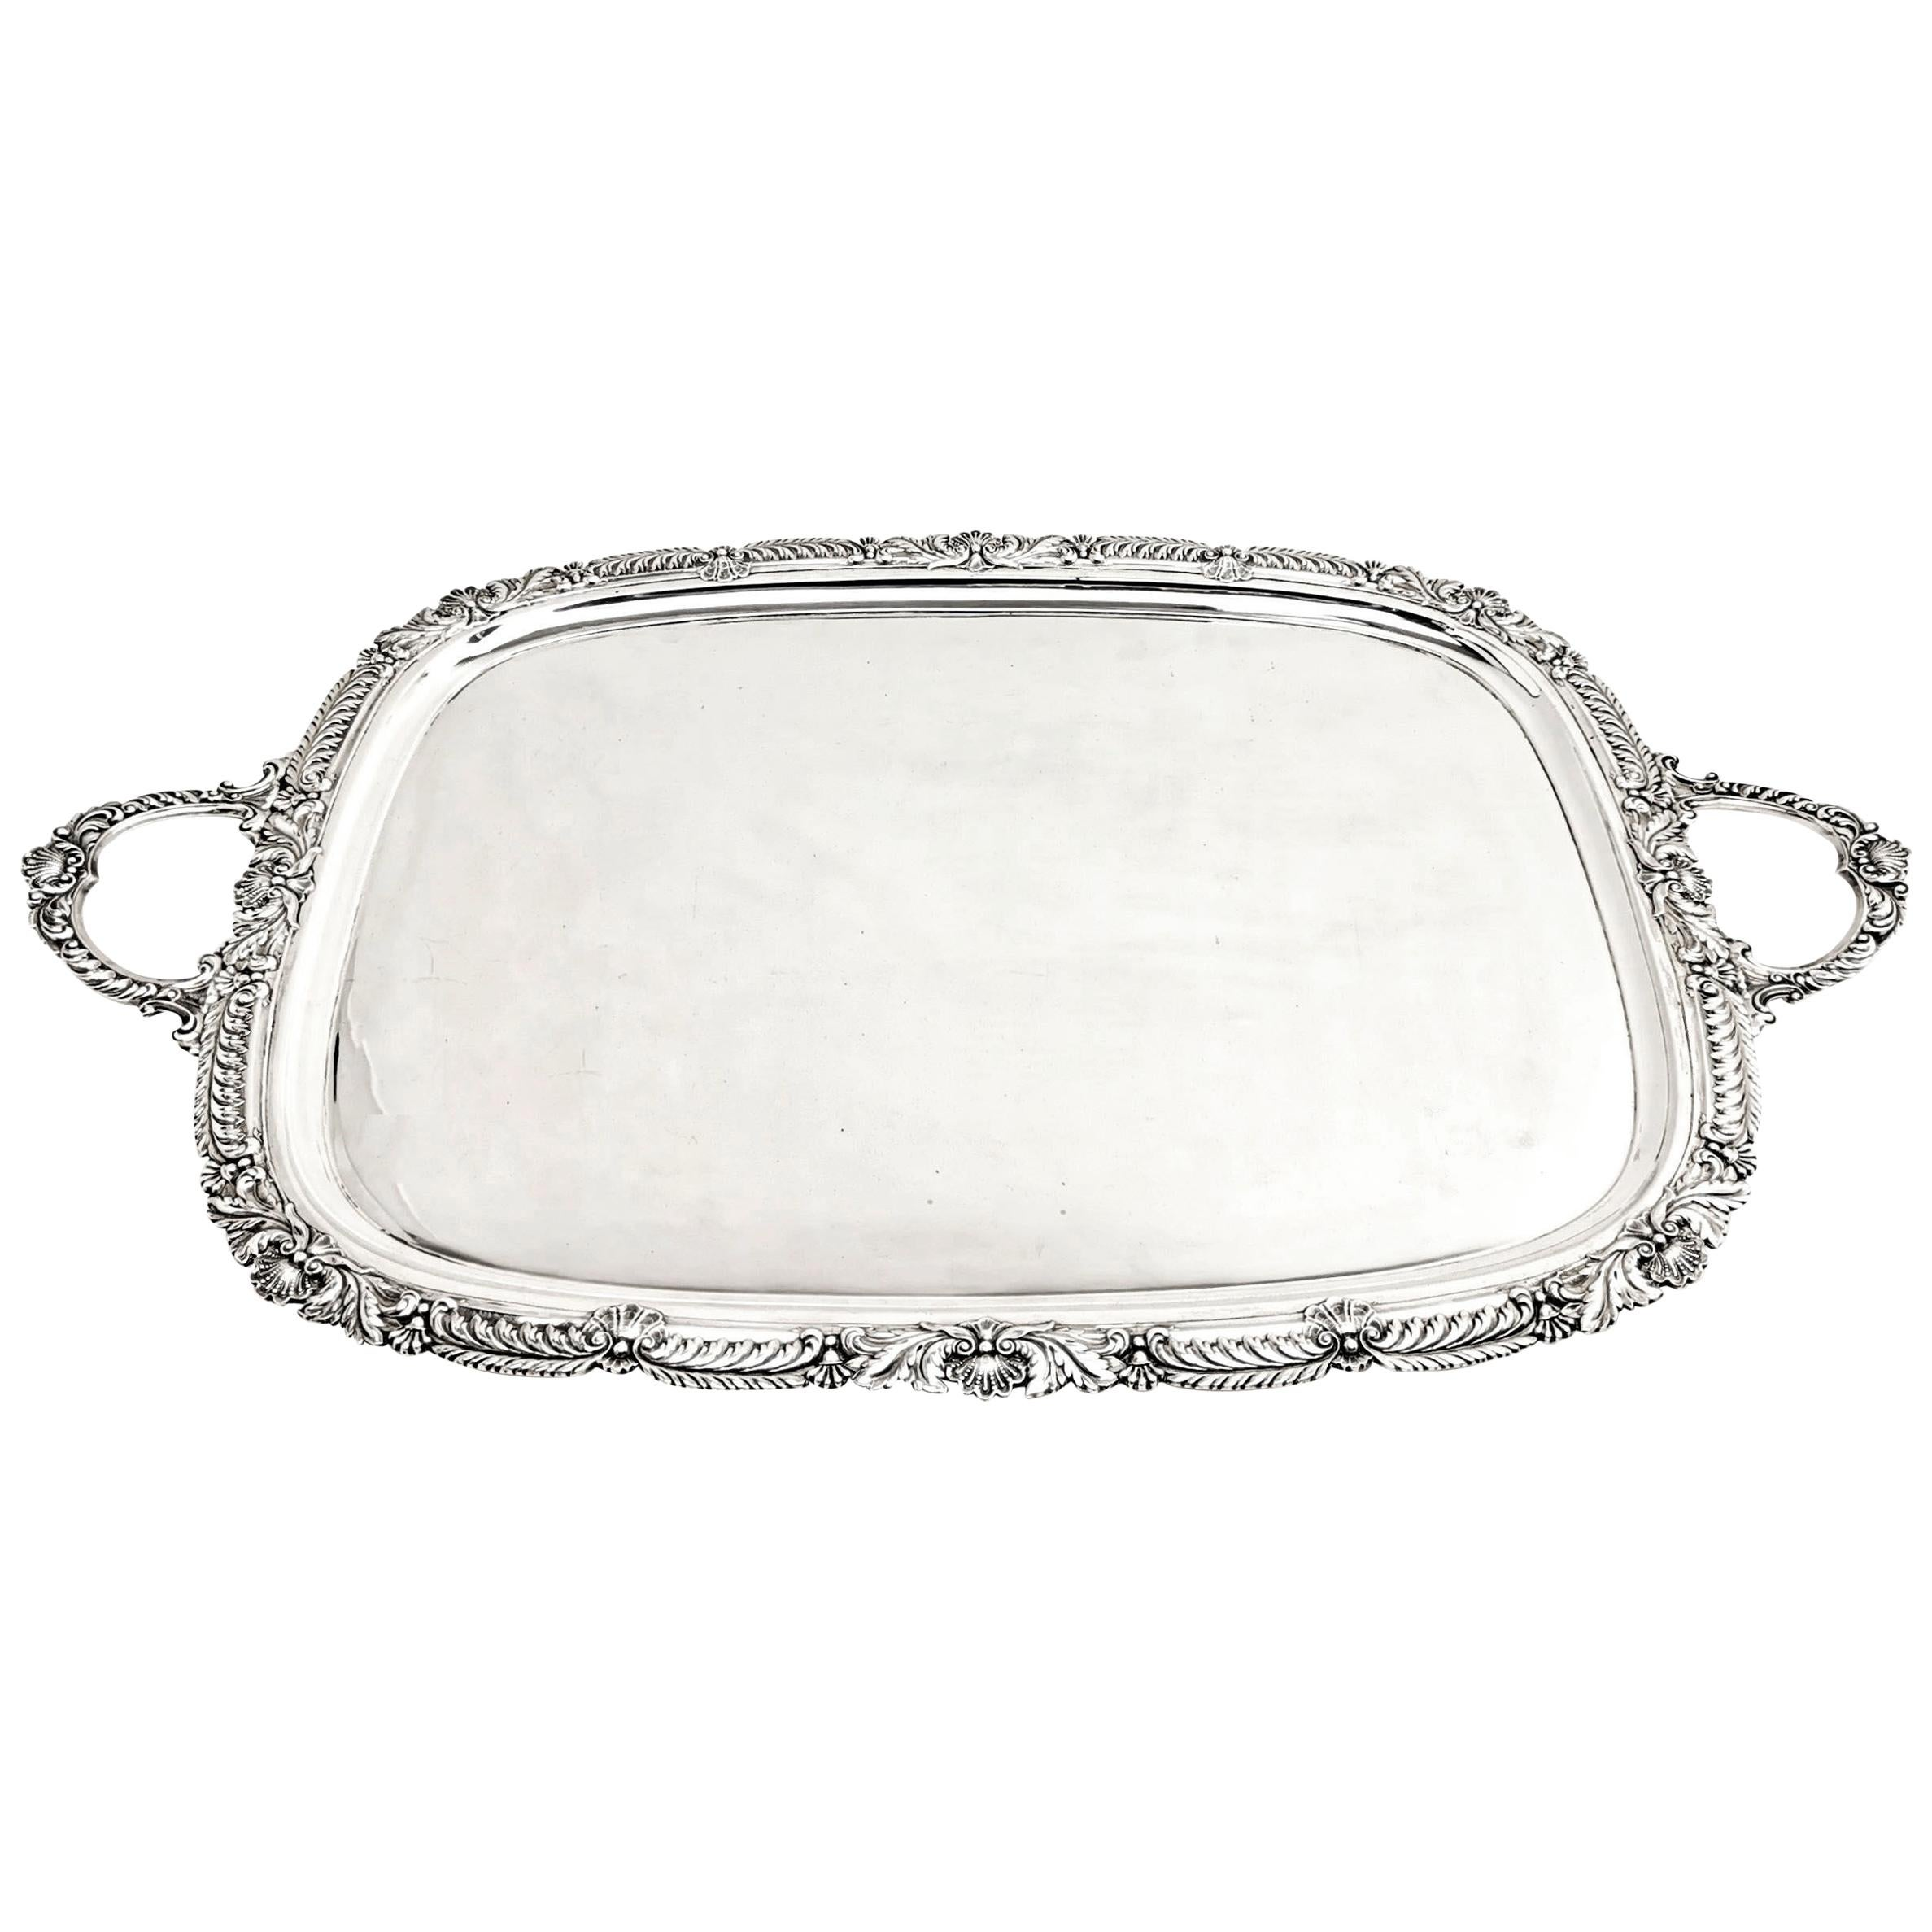 Large Antique Sterling Silver Serving Tray Or Tea Tray 1908 Shell And Gadroon For Sale At 1stdibs